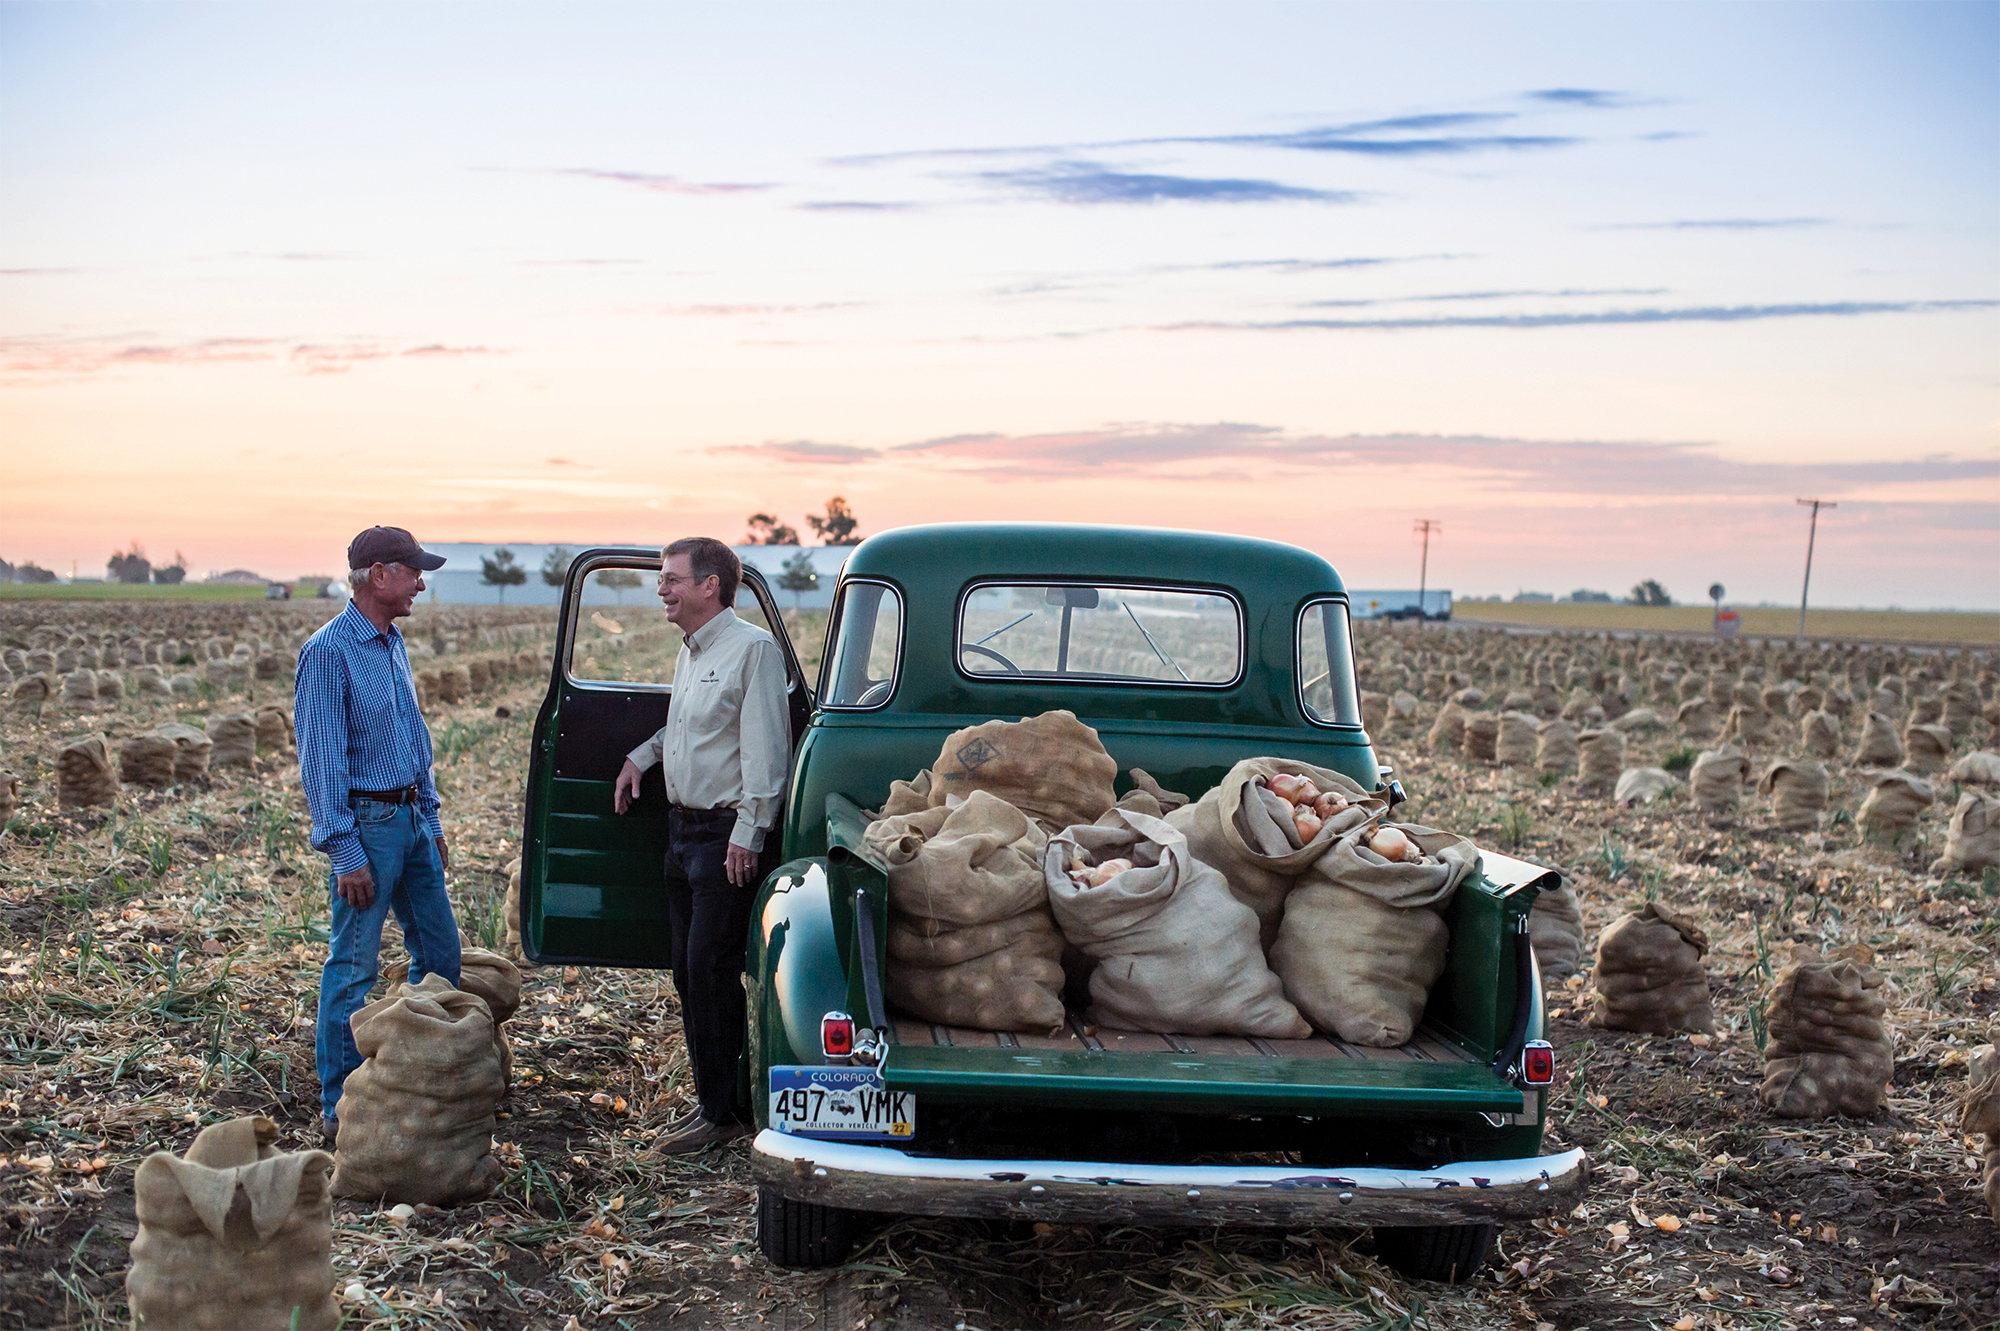 Two farmers by a green pickup truck with bags of onions in the truck's bed